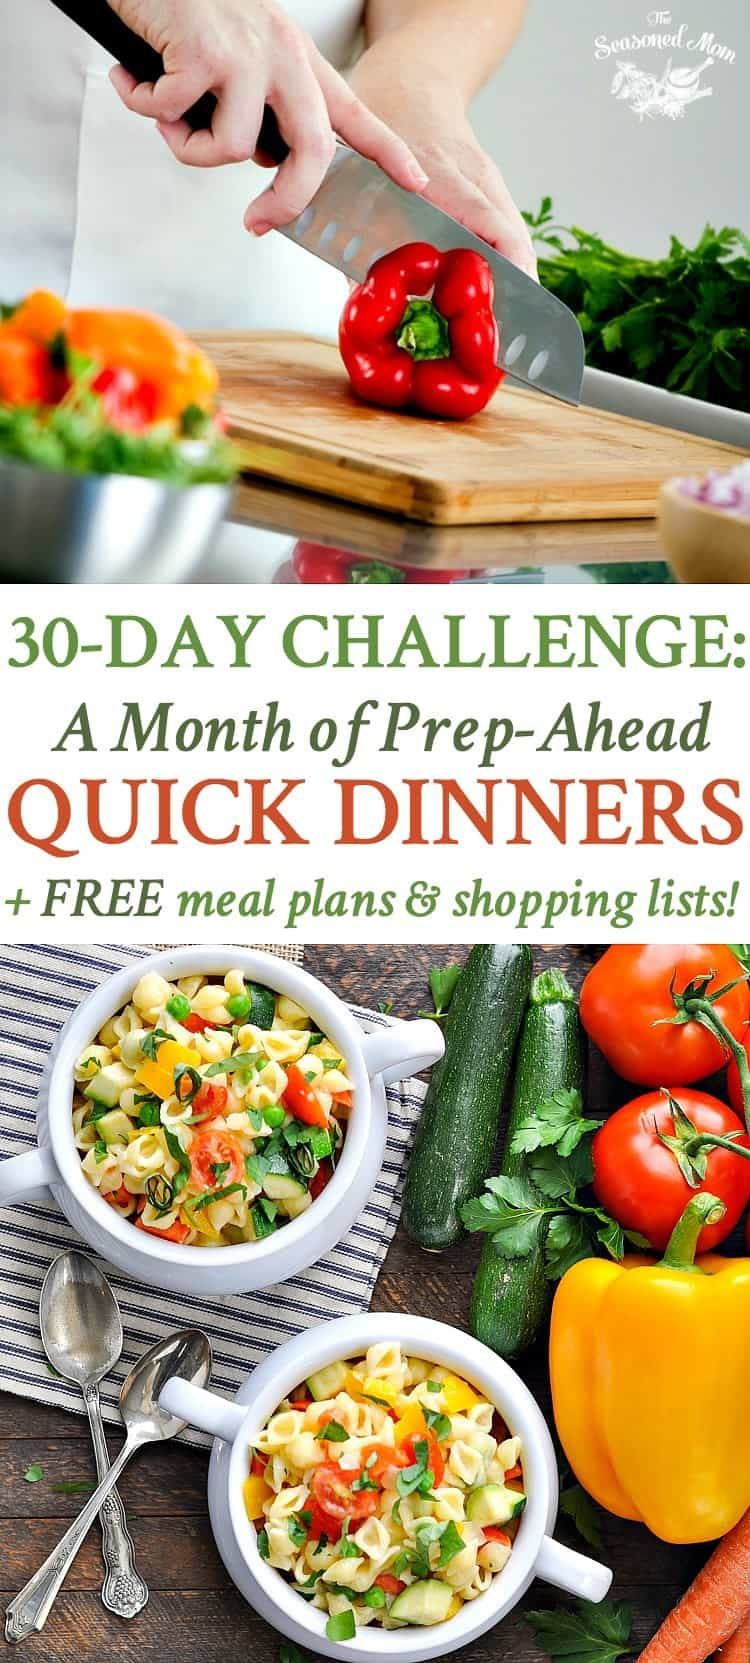 30-Day Challenge: A Month of Prep-Ahead Quick Dinners! Easy Dinner Recipes | Dinner Ideas | Healthy Dinner Recipes | Meal Planning on a Budget | Meal Prep | Clean Eating Recipes | Meal Plan | Meal Prep for the Week